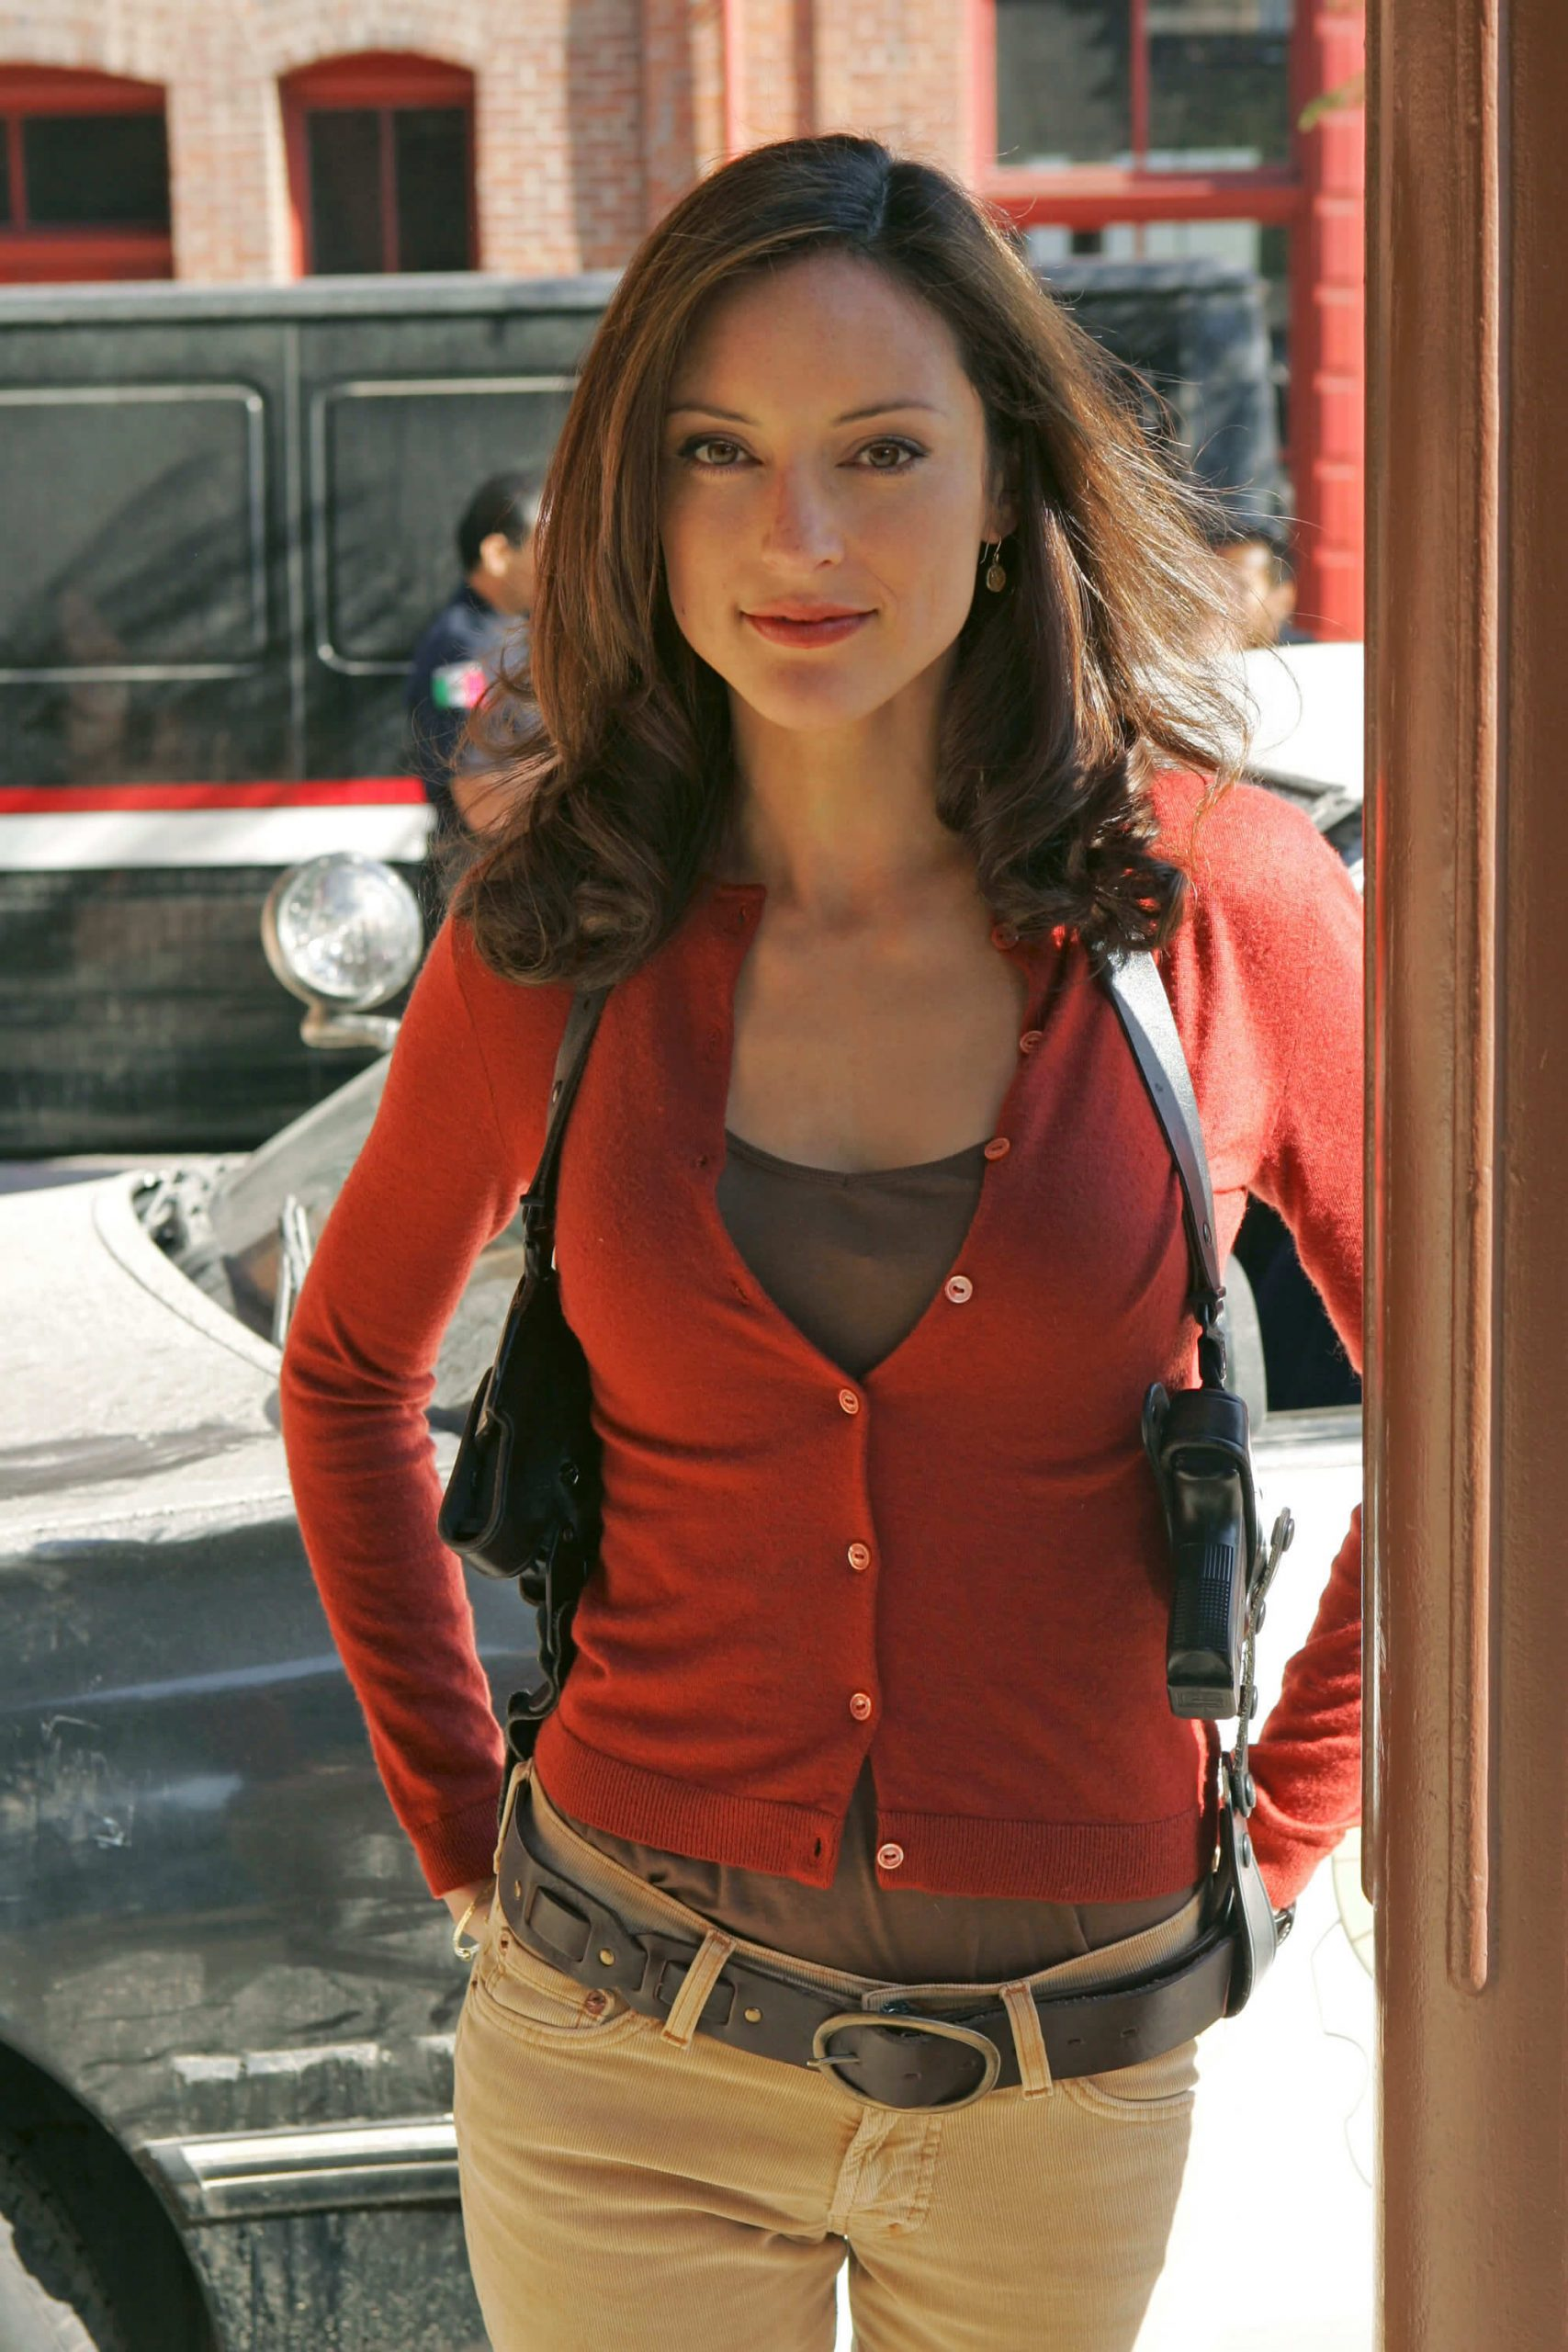 50 Hot Lola Glaudini Photos Will Make Your Day Better - 12Thblog-1856